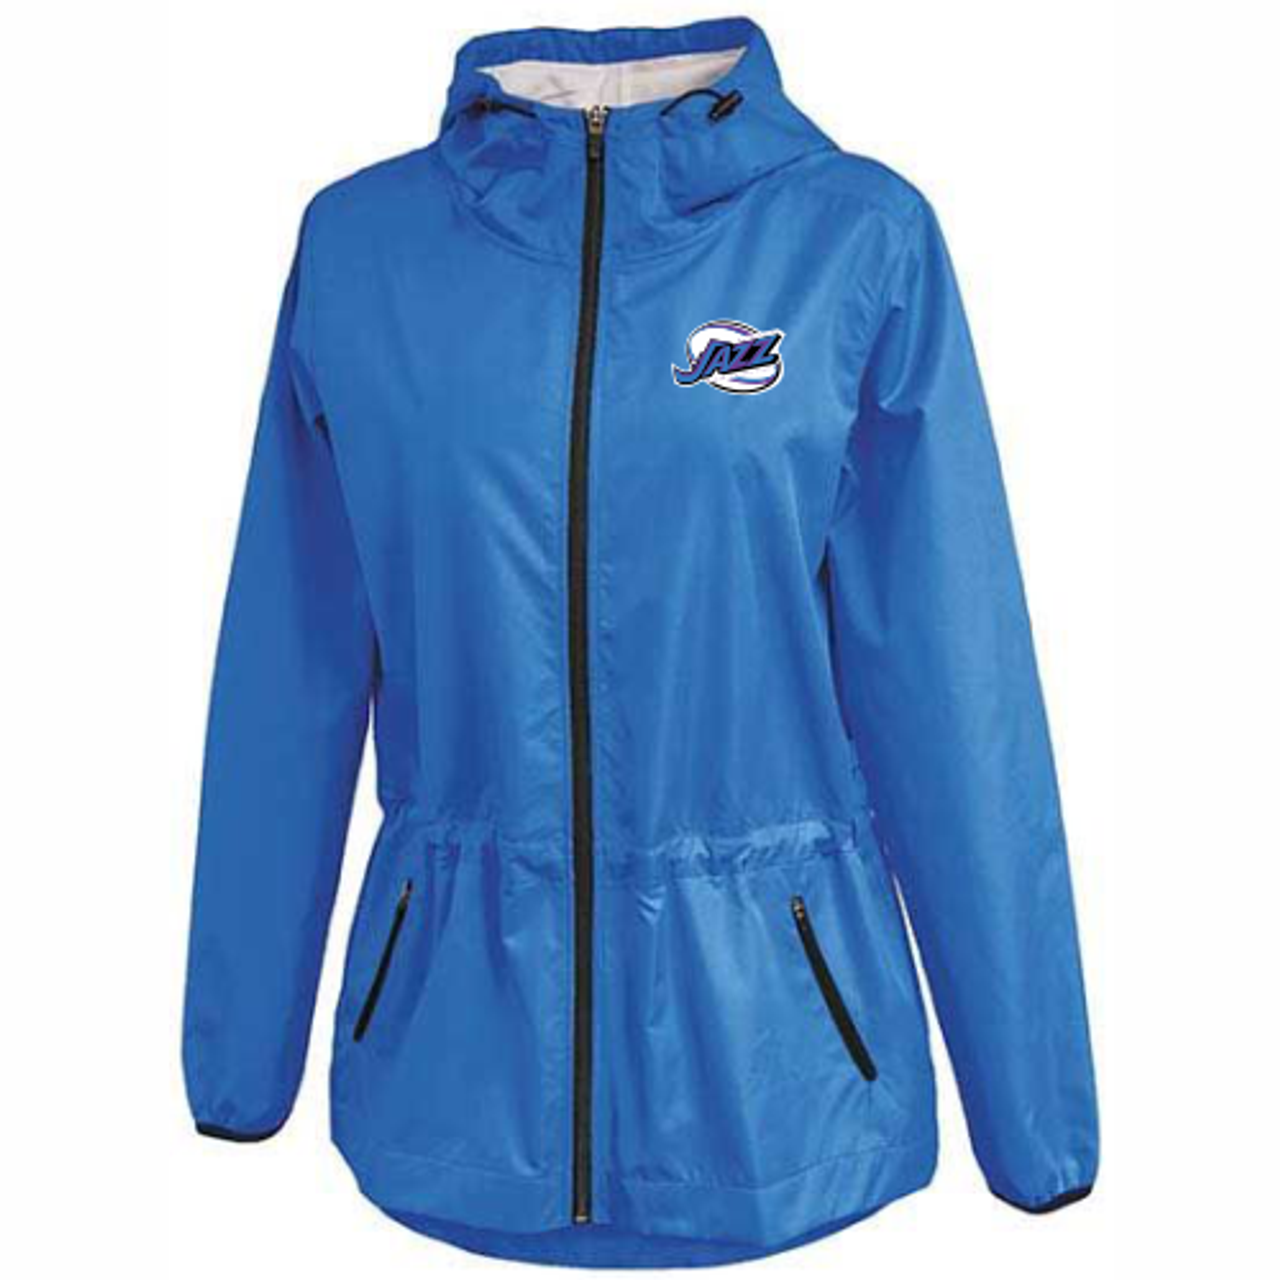 KC Jazz Ladies-Cut Windbreaker